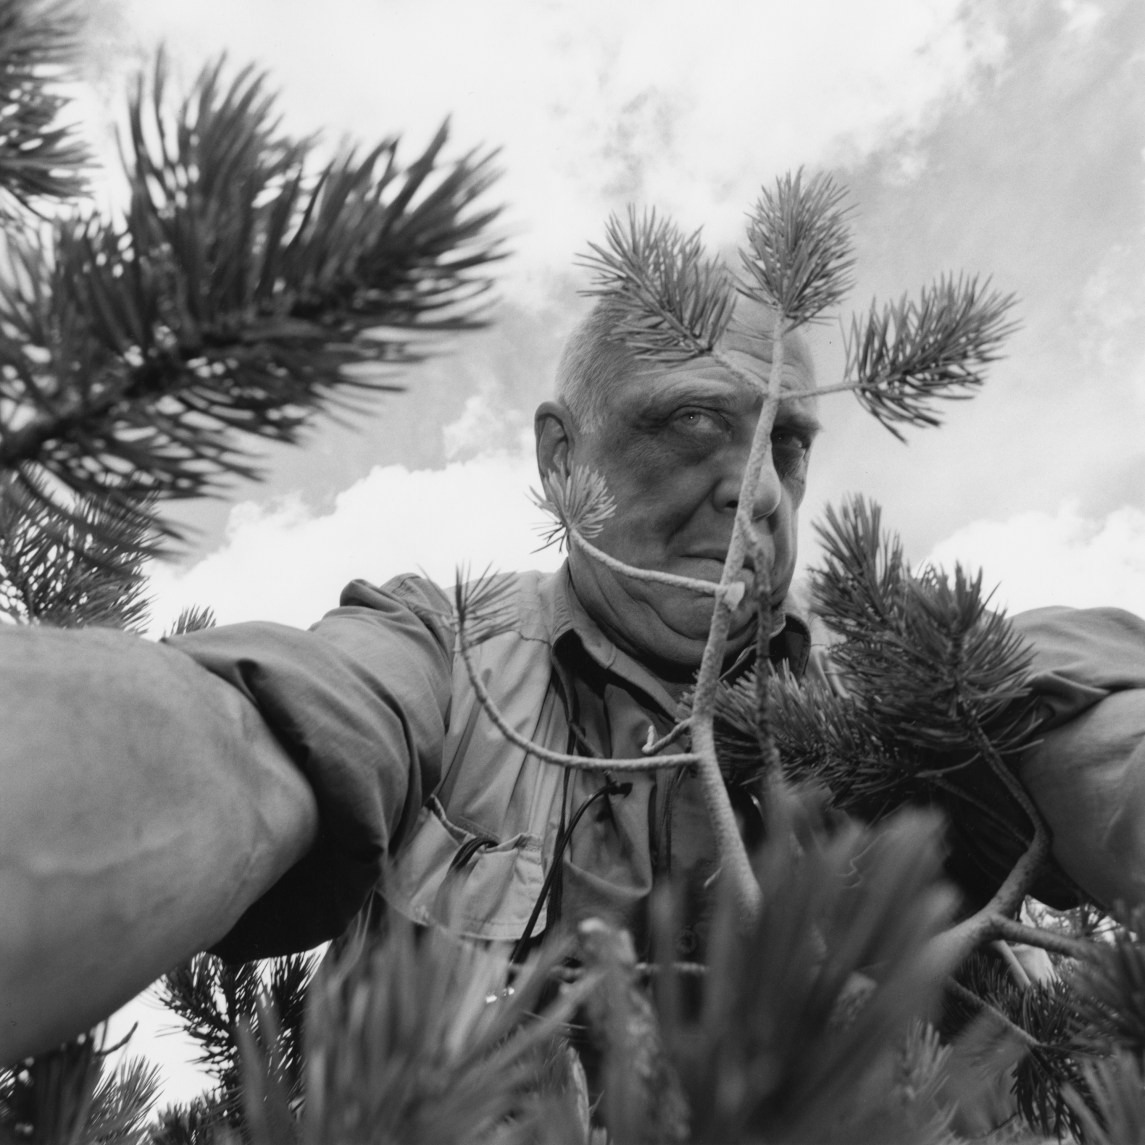 Black and white photograph of a man taking his photograph through pine branches